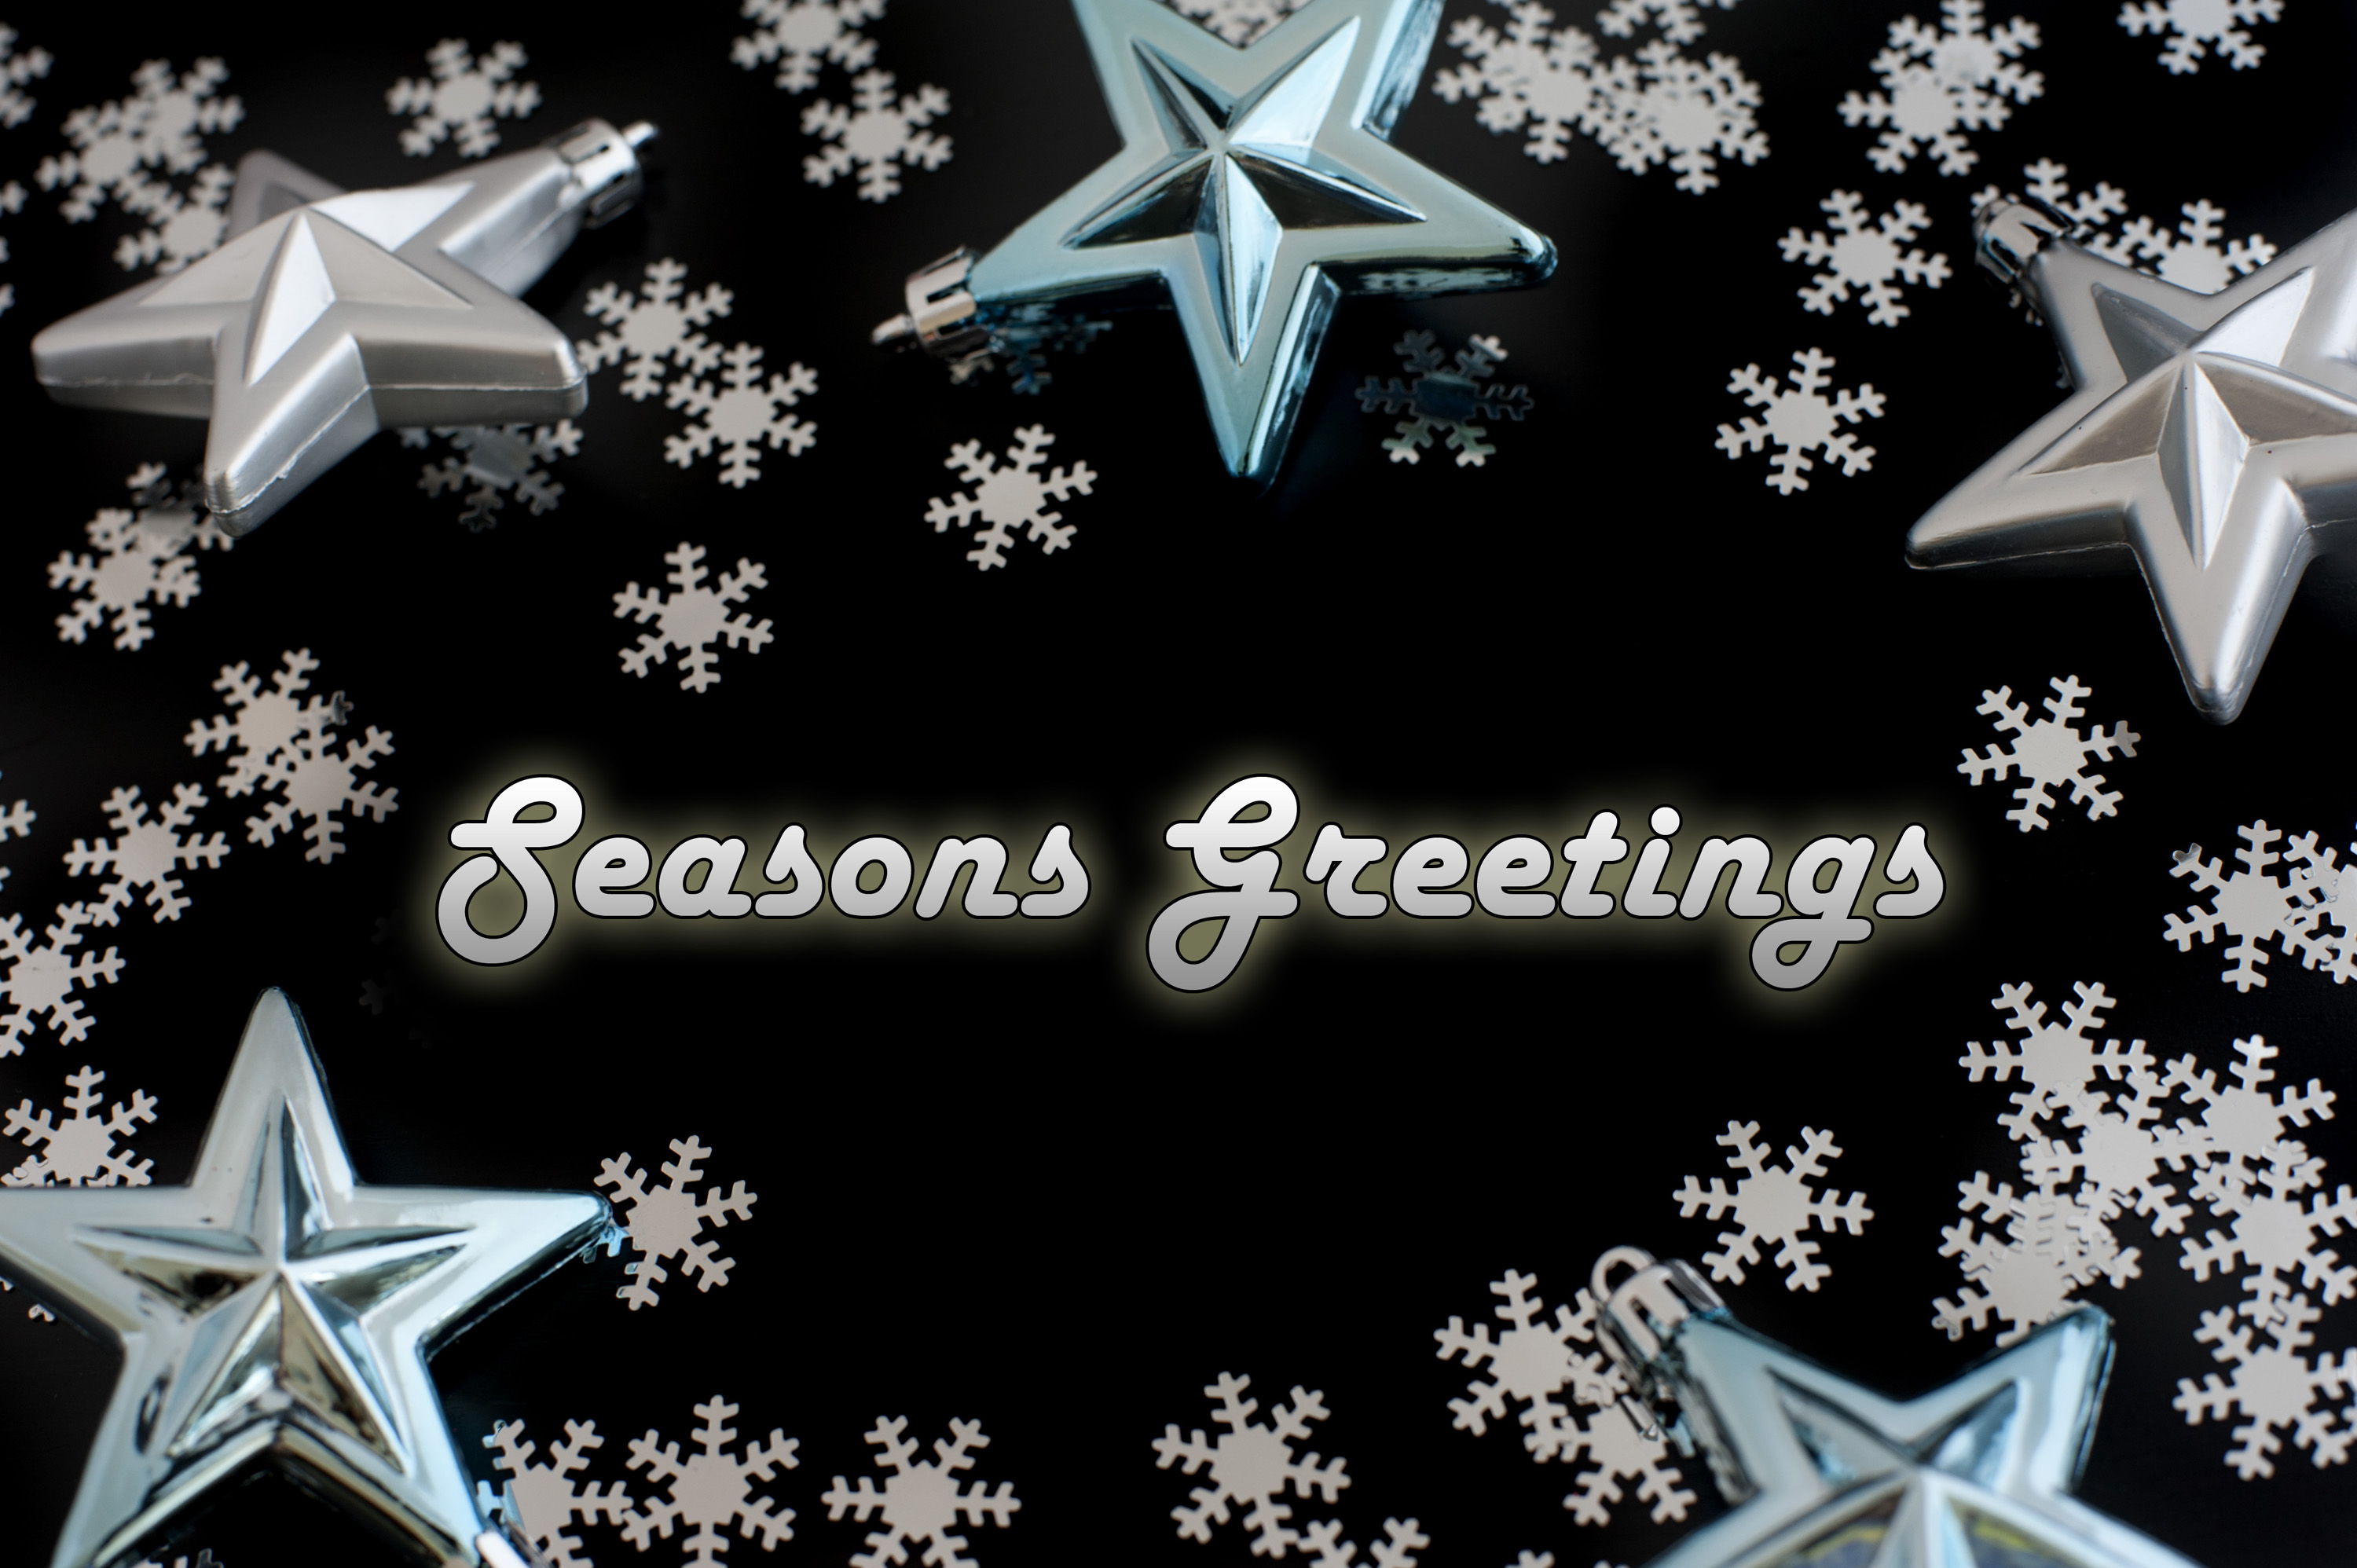 Seasons greetings card with glowing text surrounded by snowflakes and stars on a black background